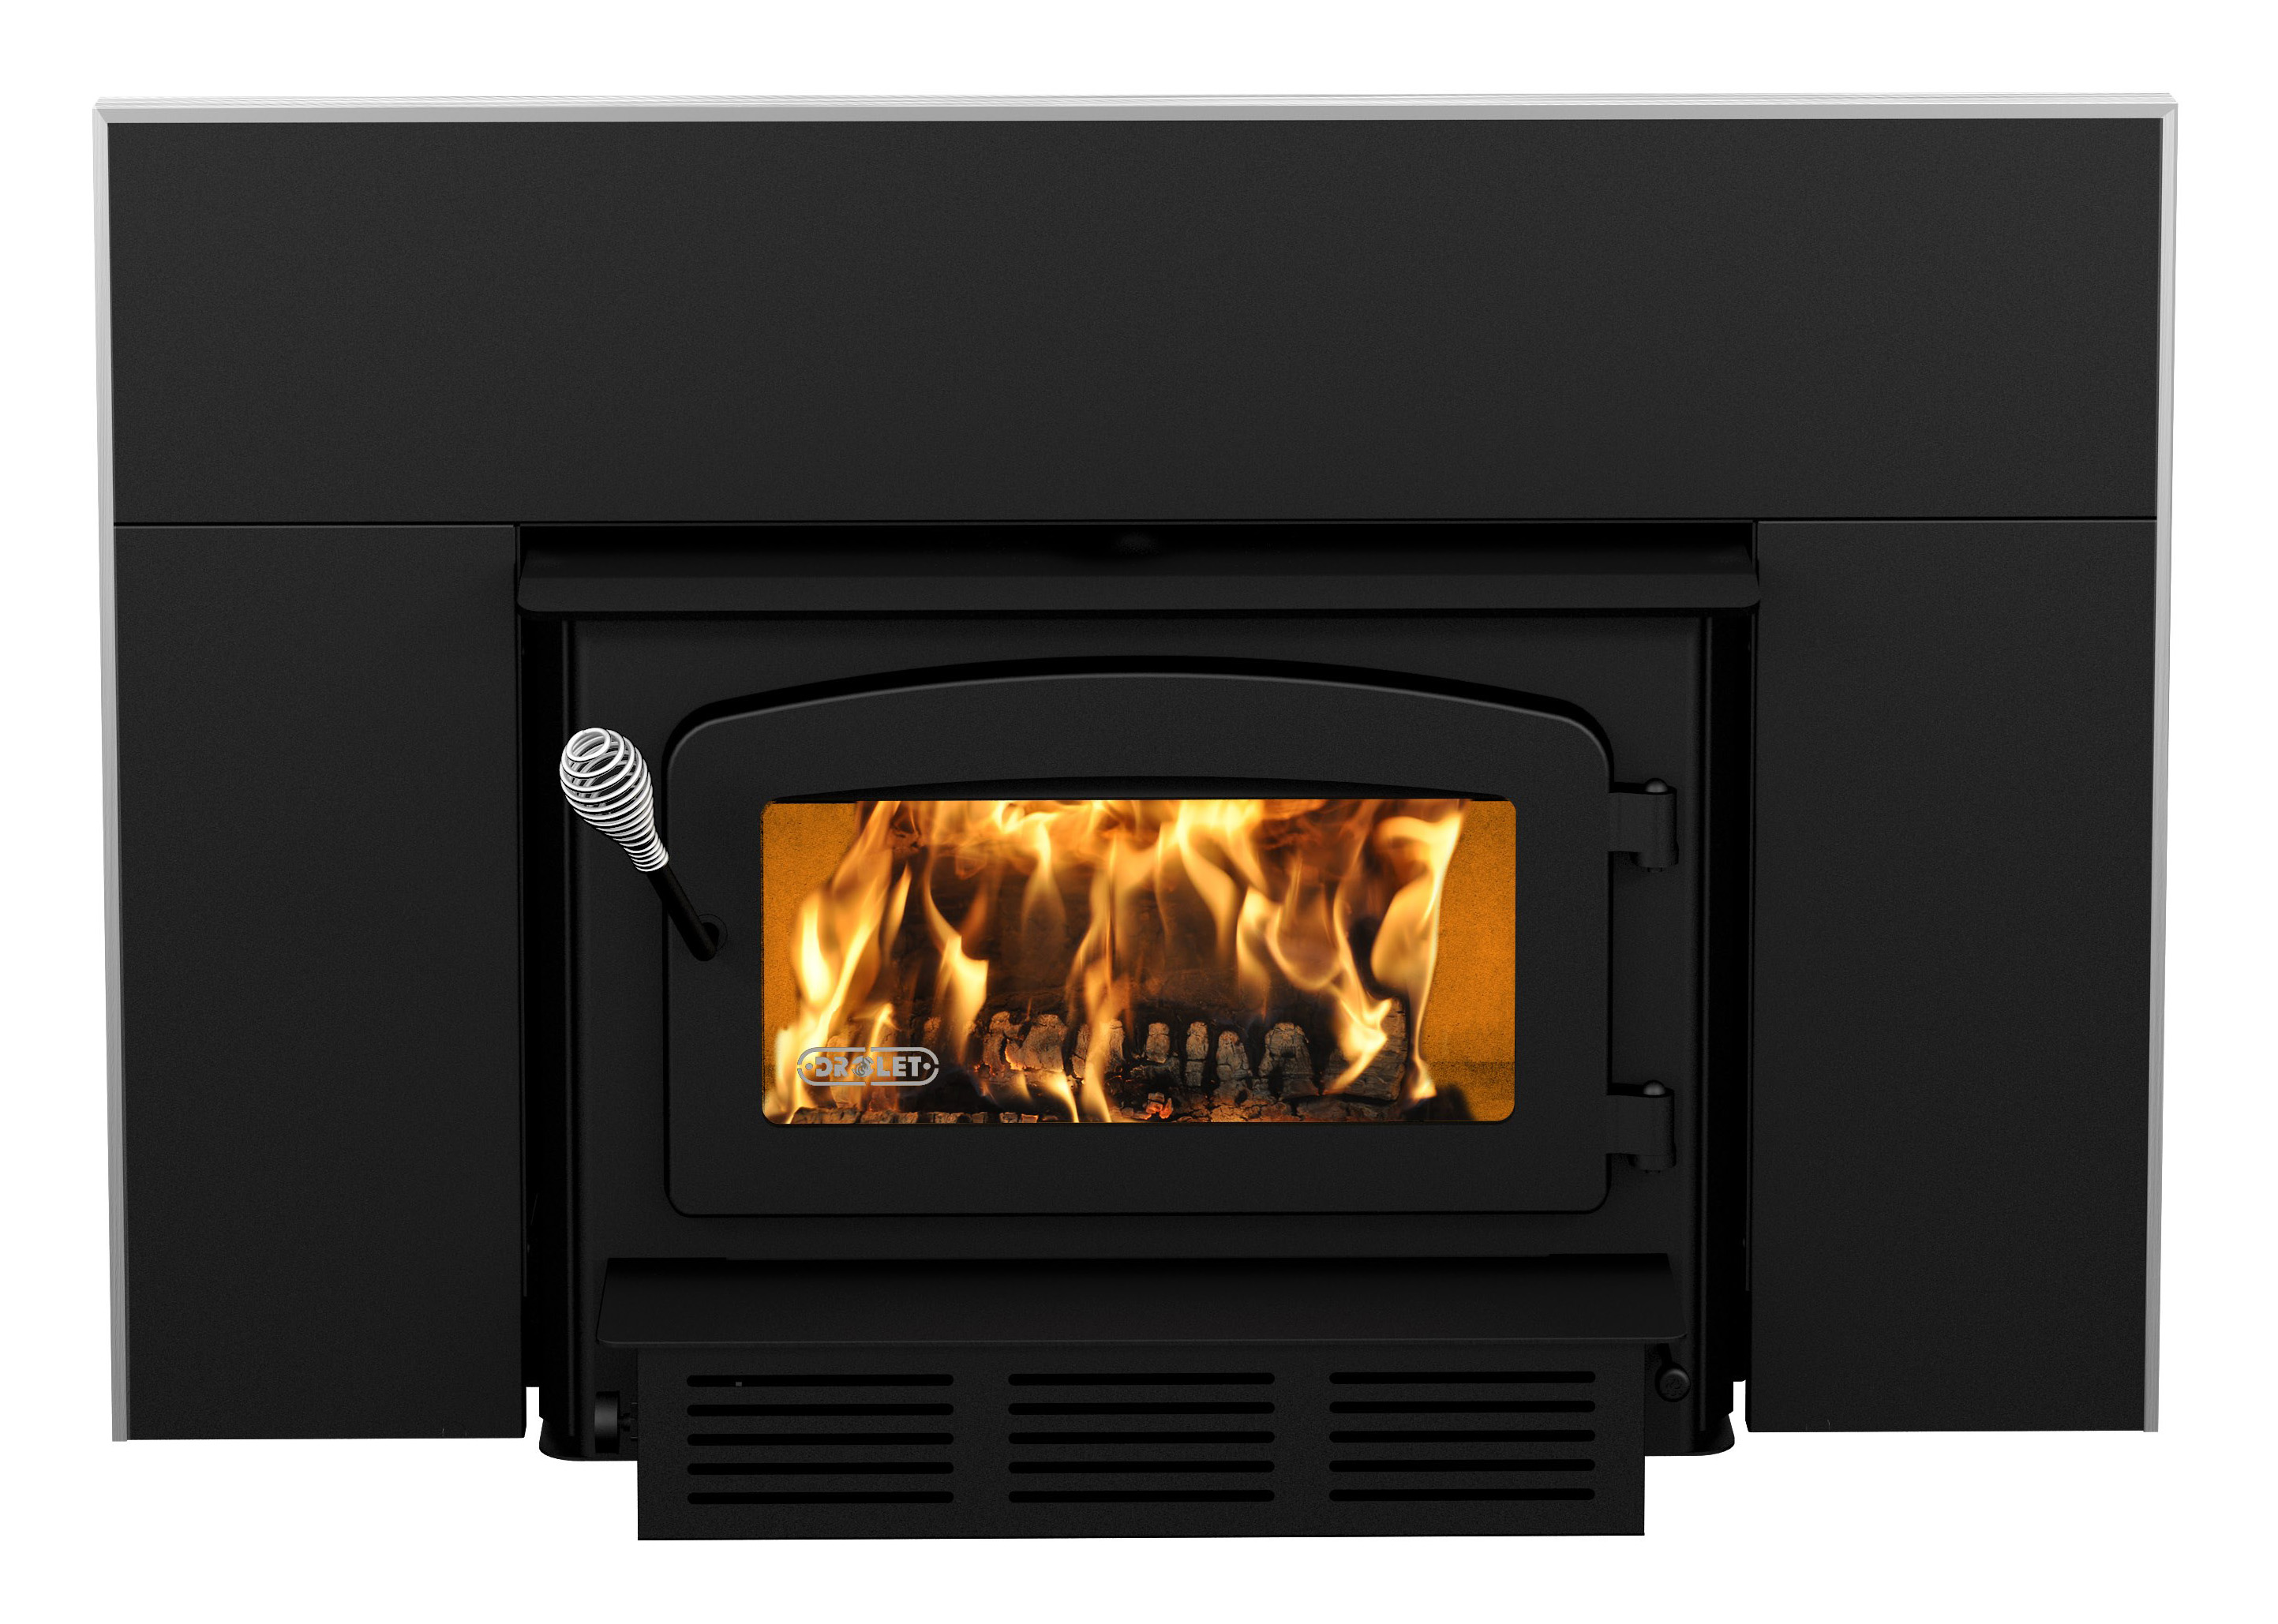 Drolet Fireplace Wood Insert, Escape 1500 with Blower Included